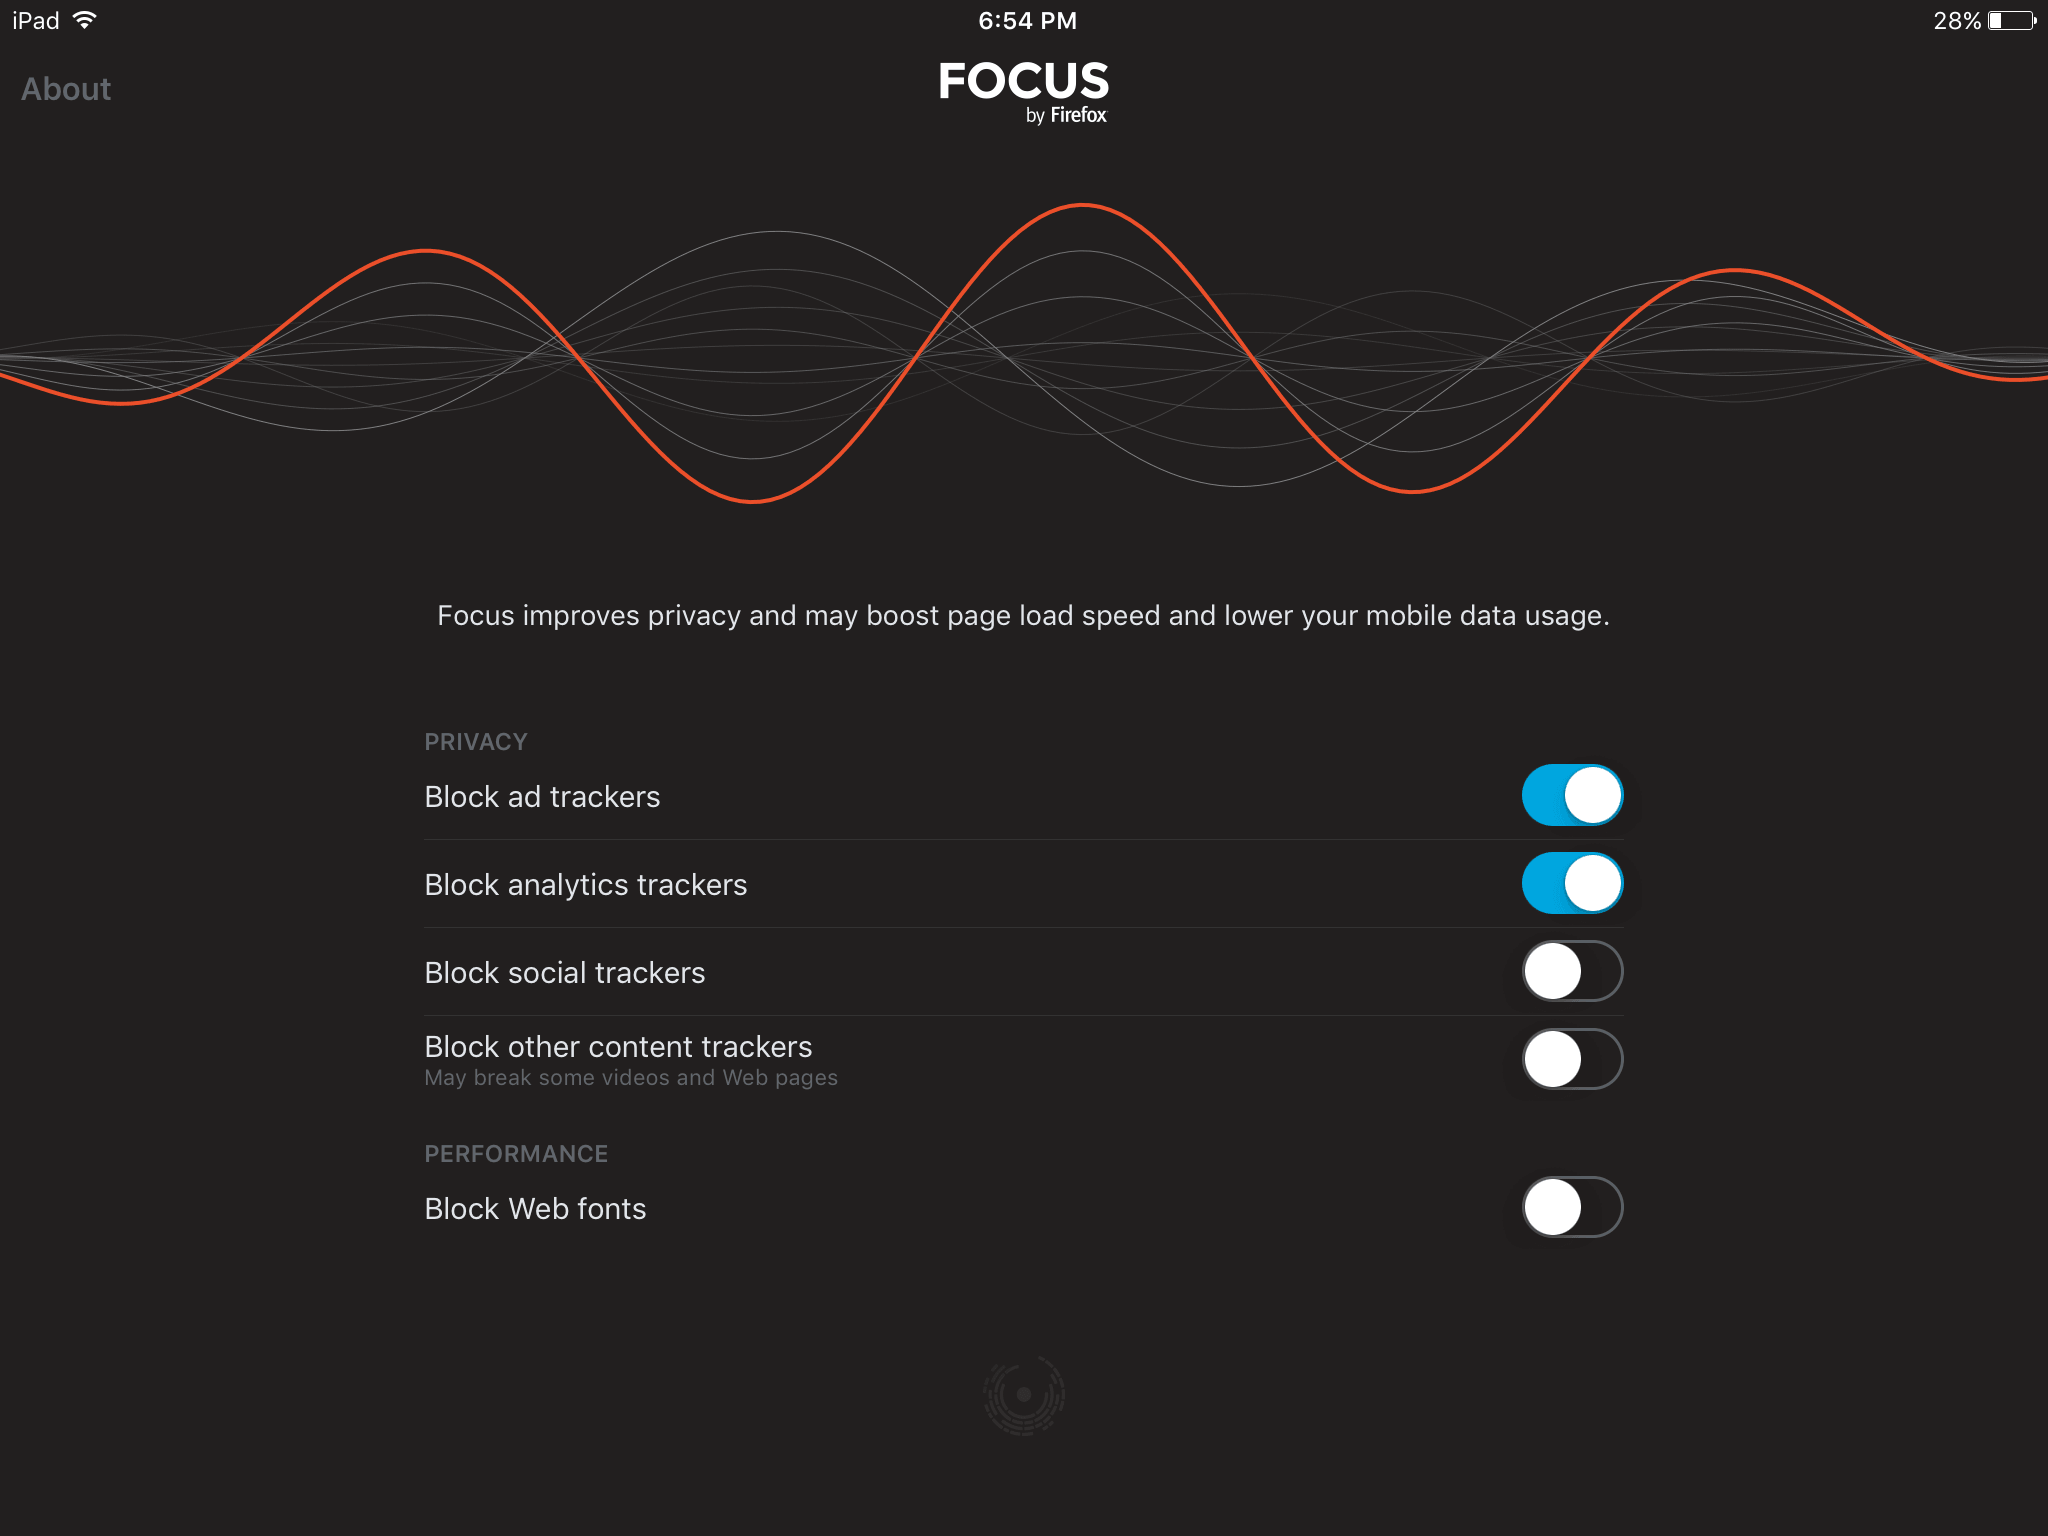 Focus by Firefox